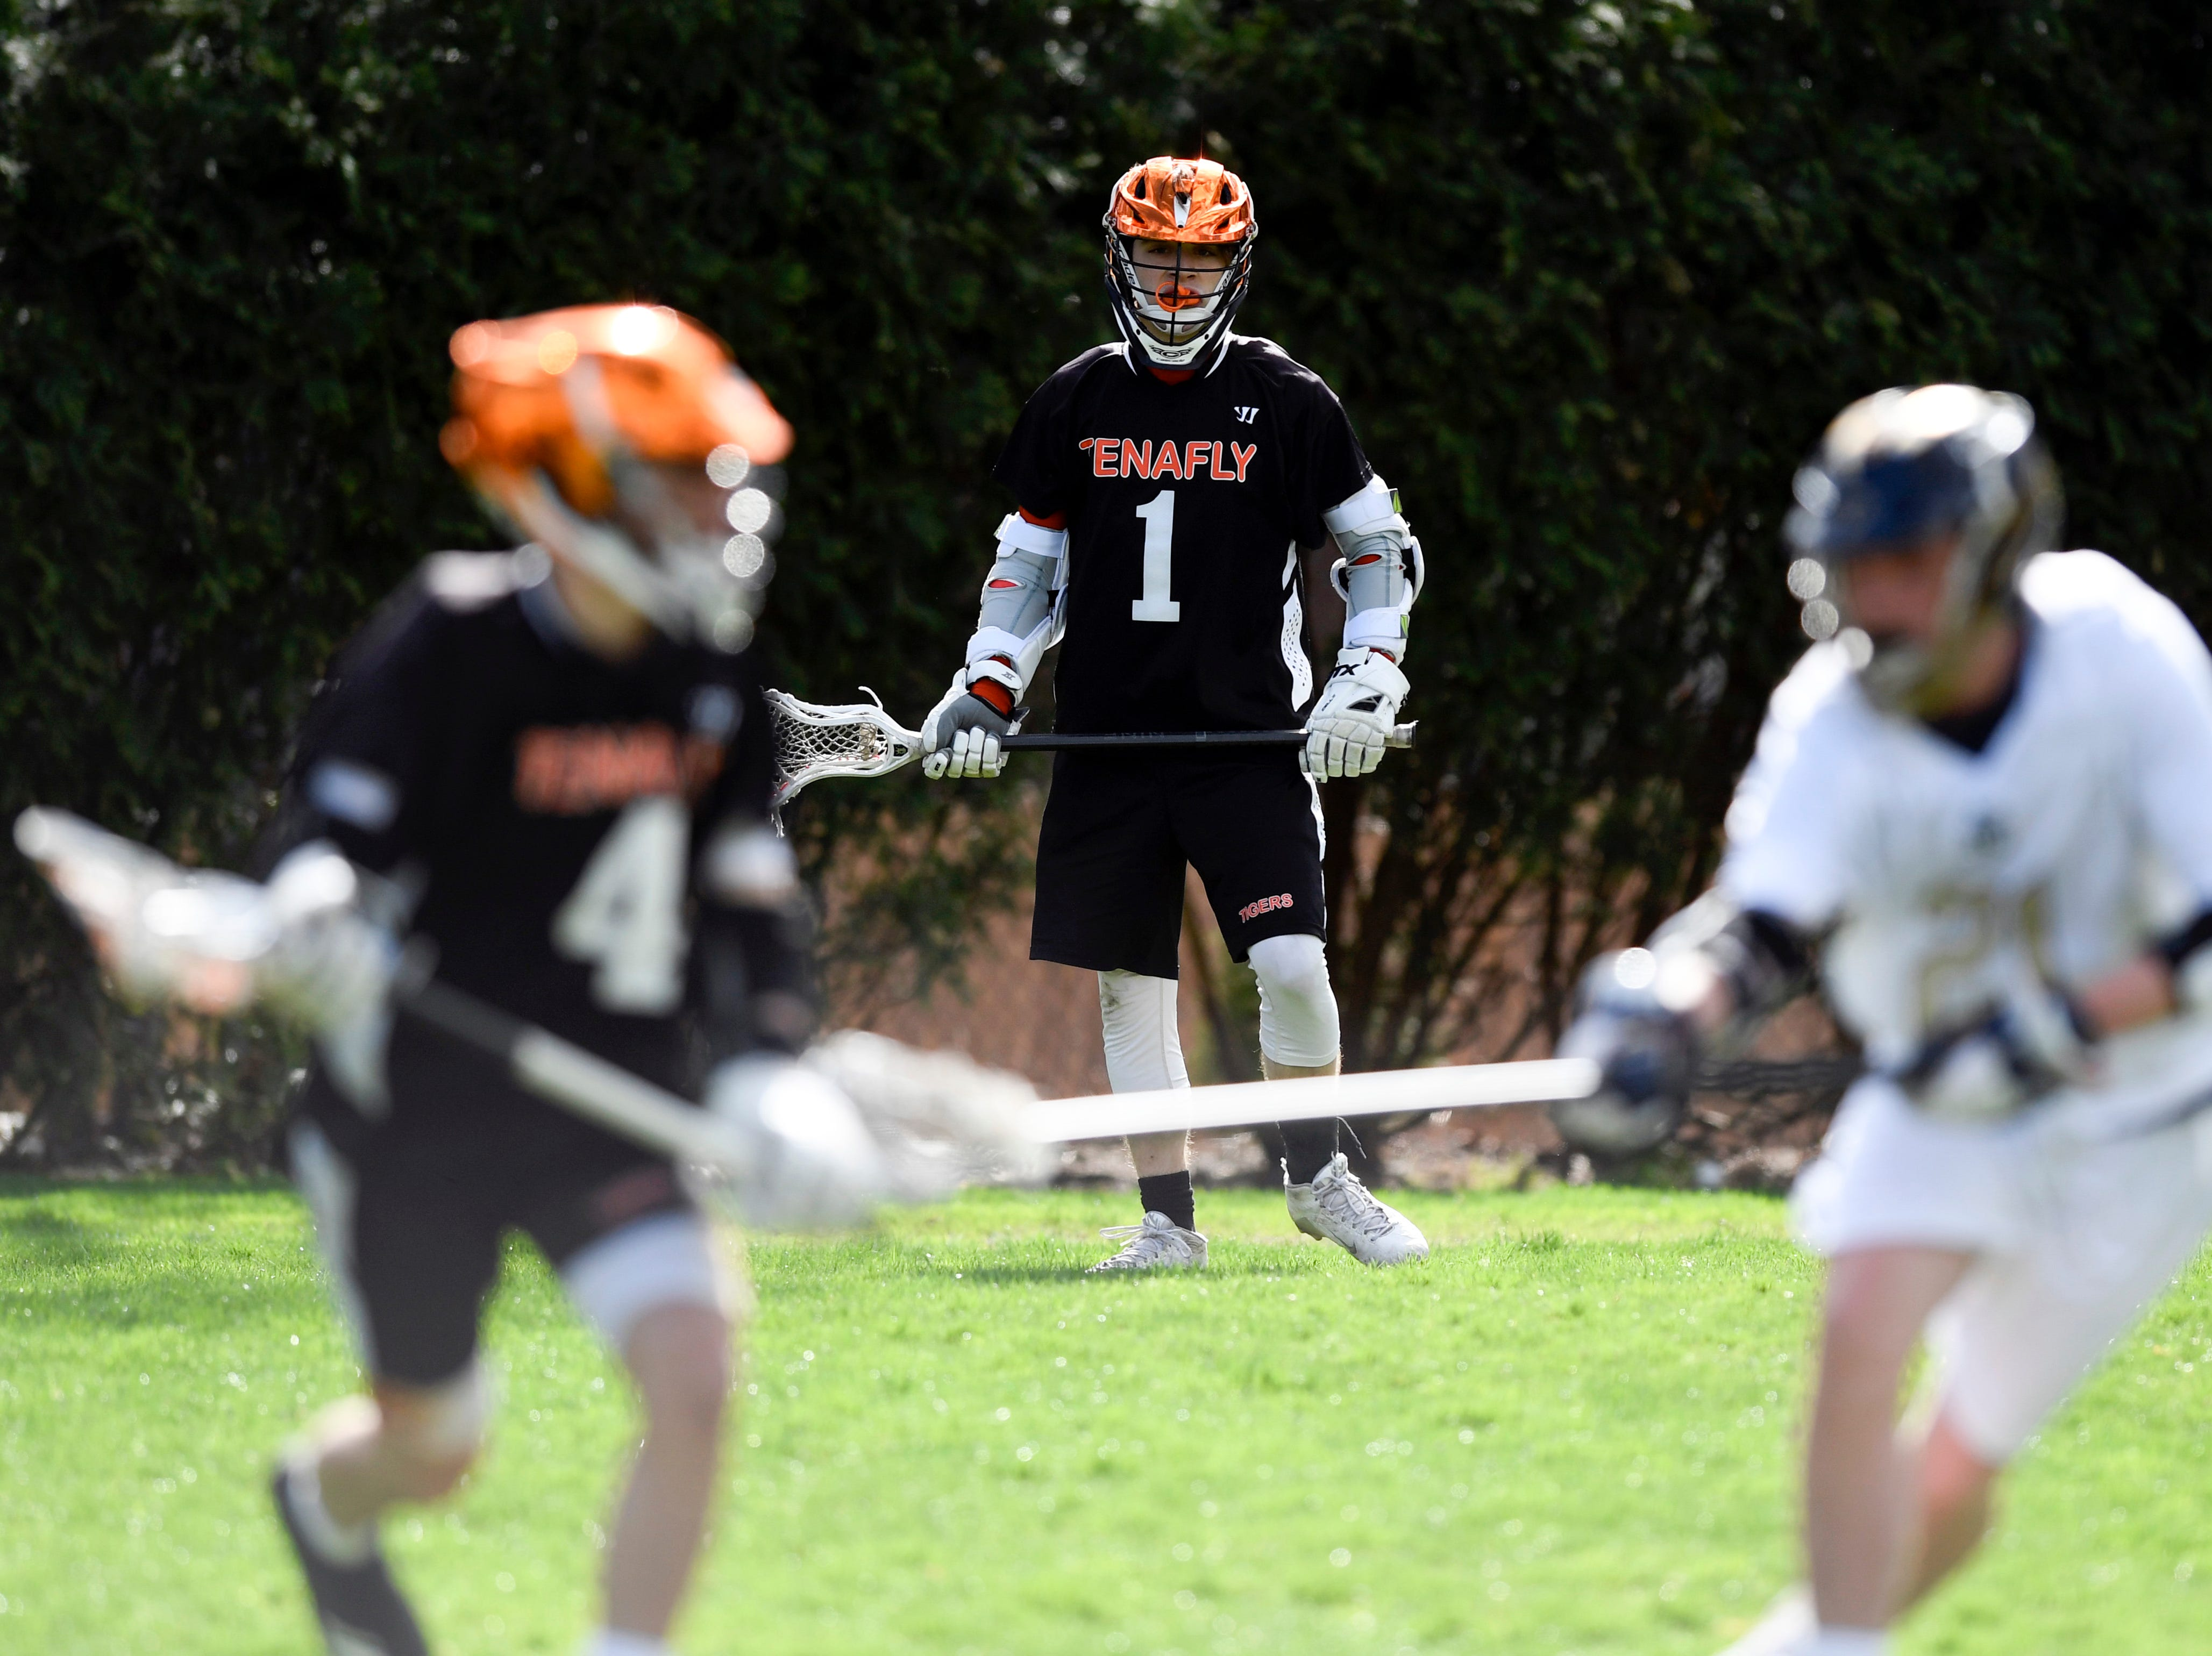 Tenafly's Austin Dome (1) looks on as his team faces Dwight Englewood on Monday, April 15, 2019, in Englewood.